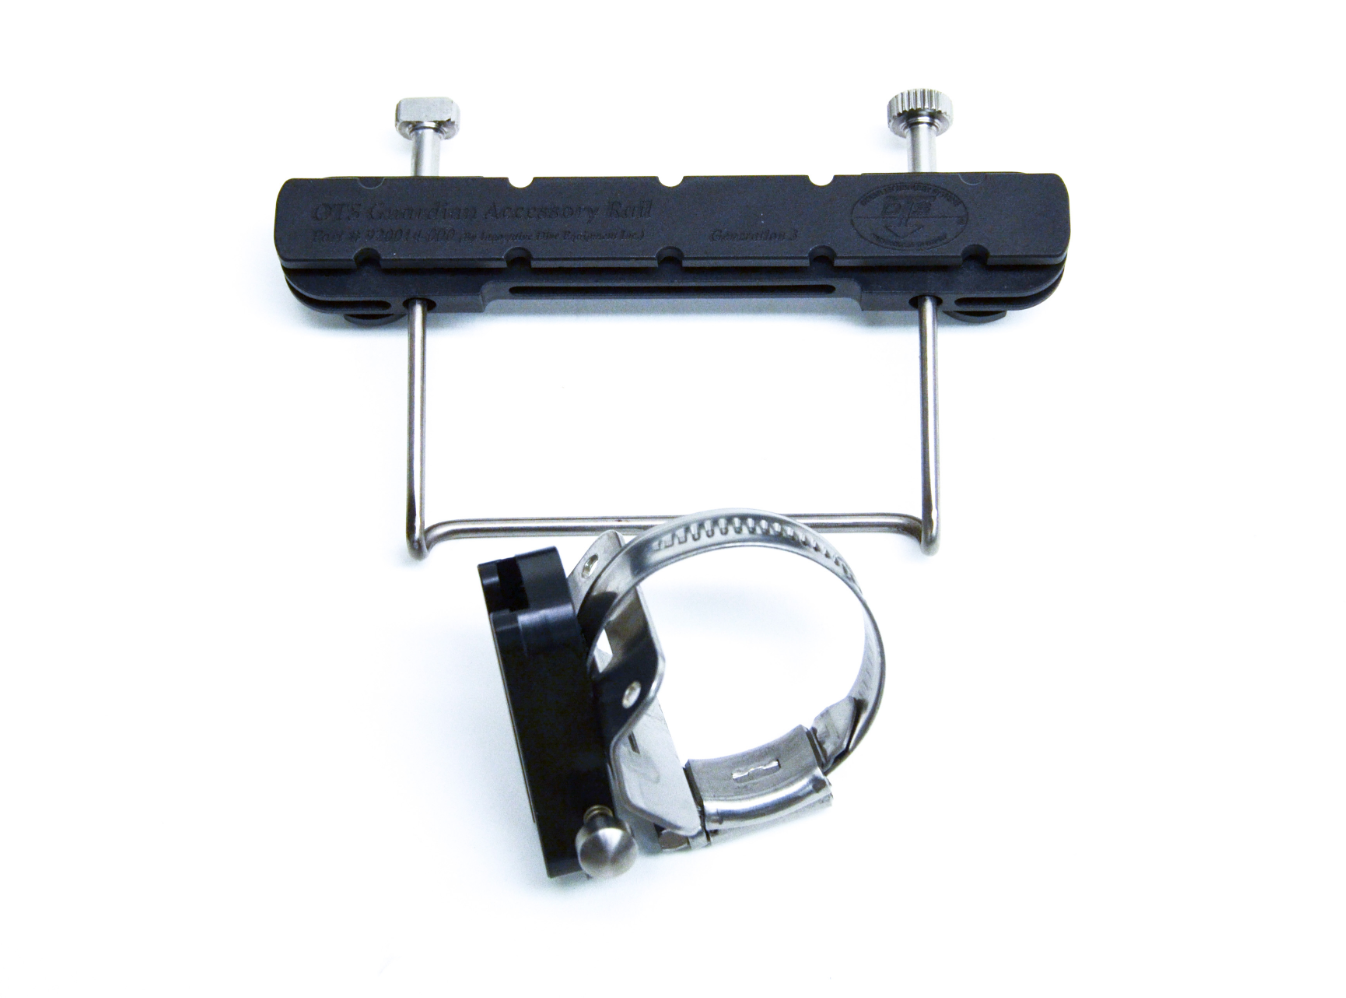 Accessory Rail Universal System (Includes Rail & Universal Slide)